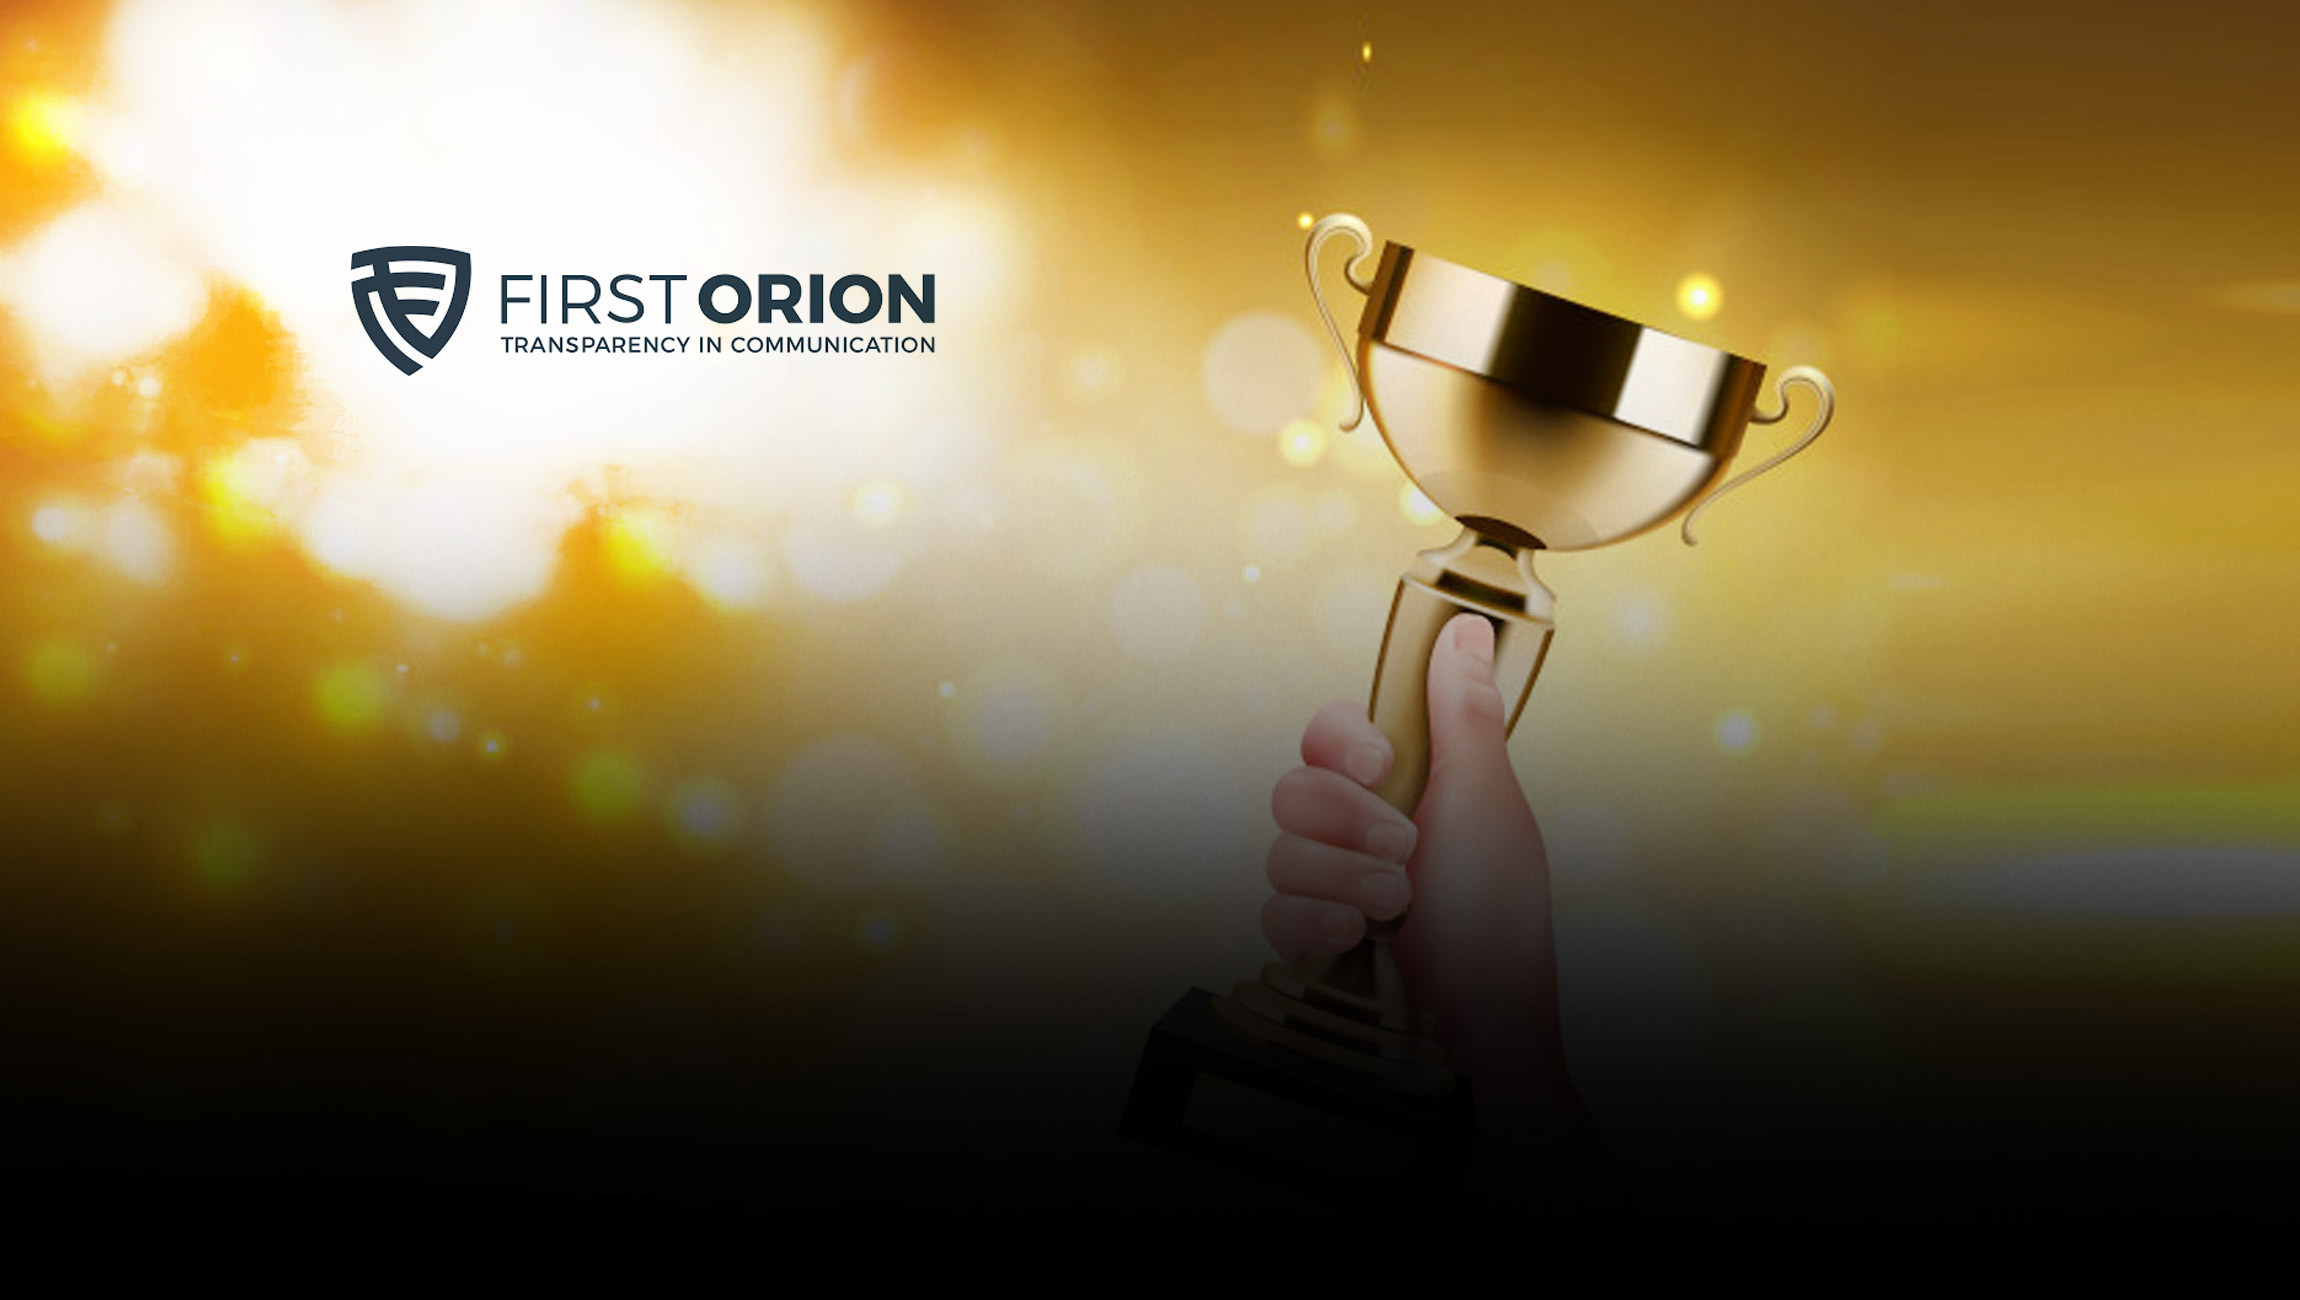 First-Orion-Receives-Coveted-2021-Contact-Center-Technology-Award-from-CUSTOMER-Magazine